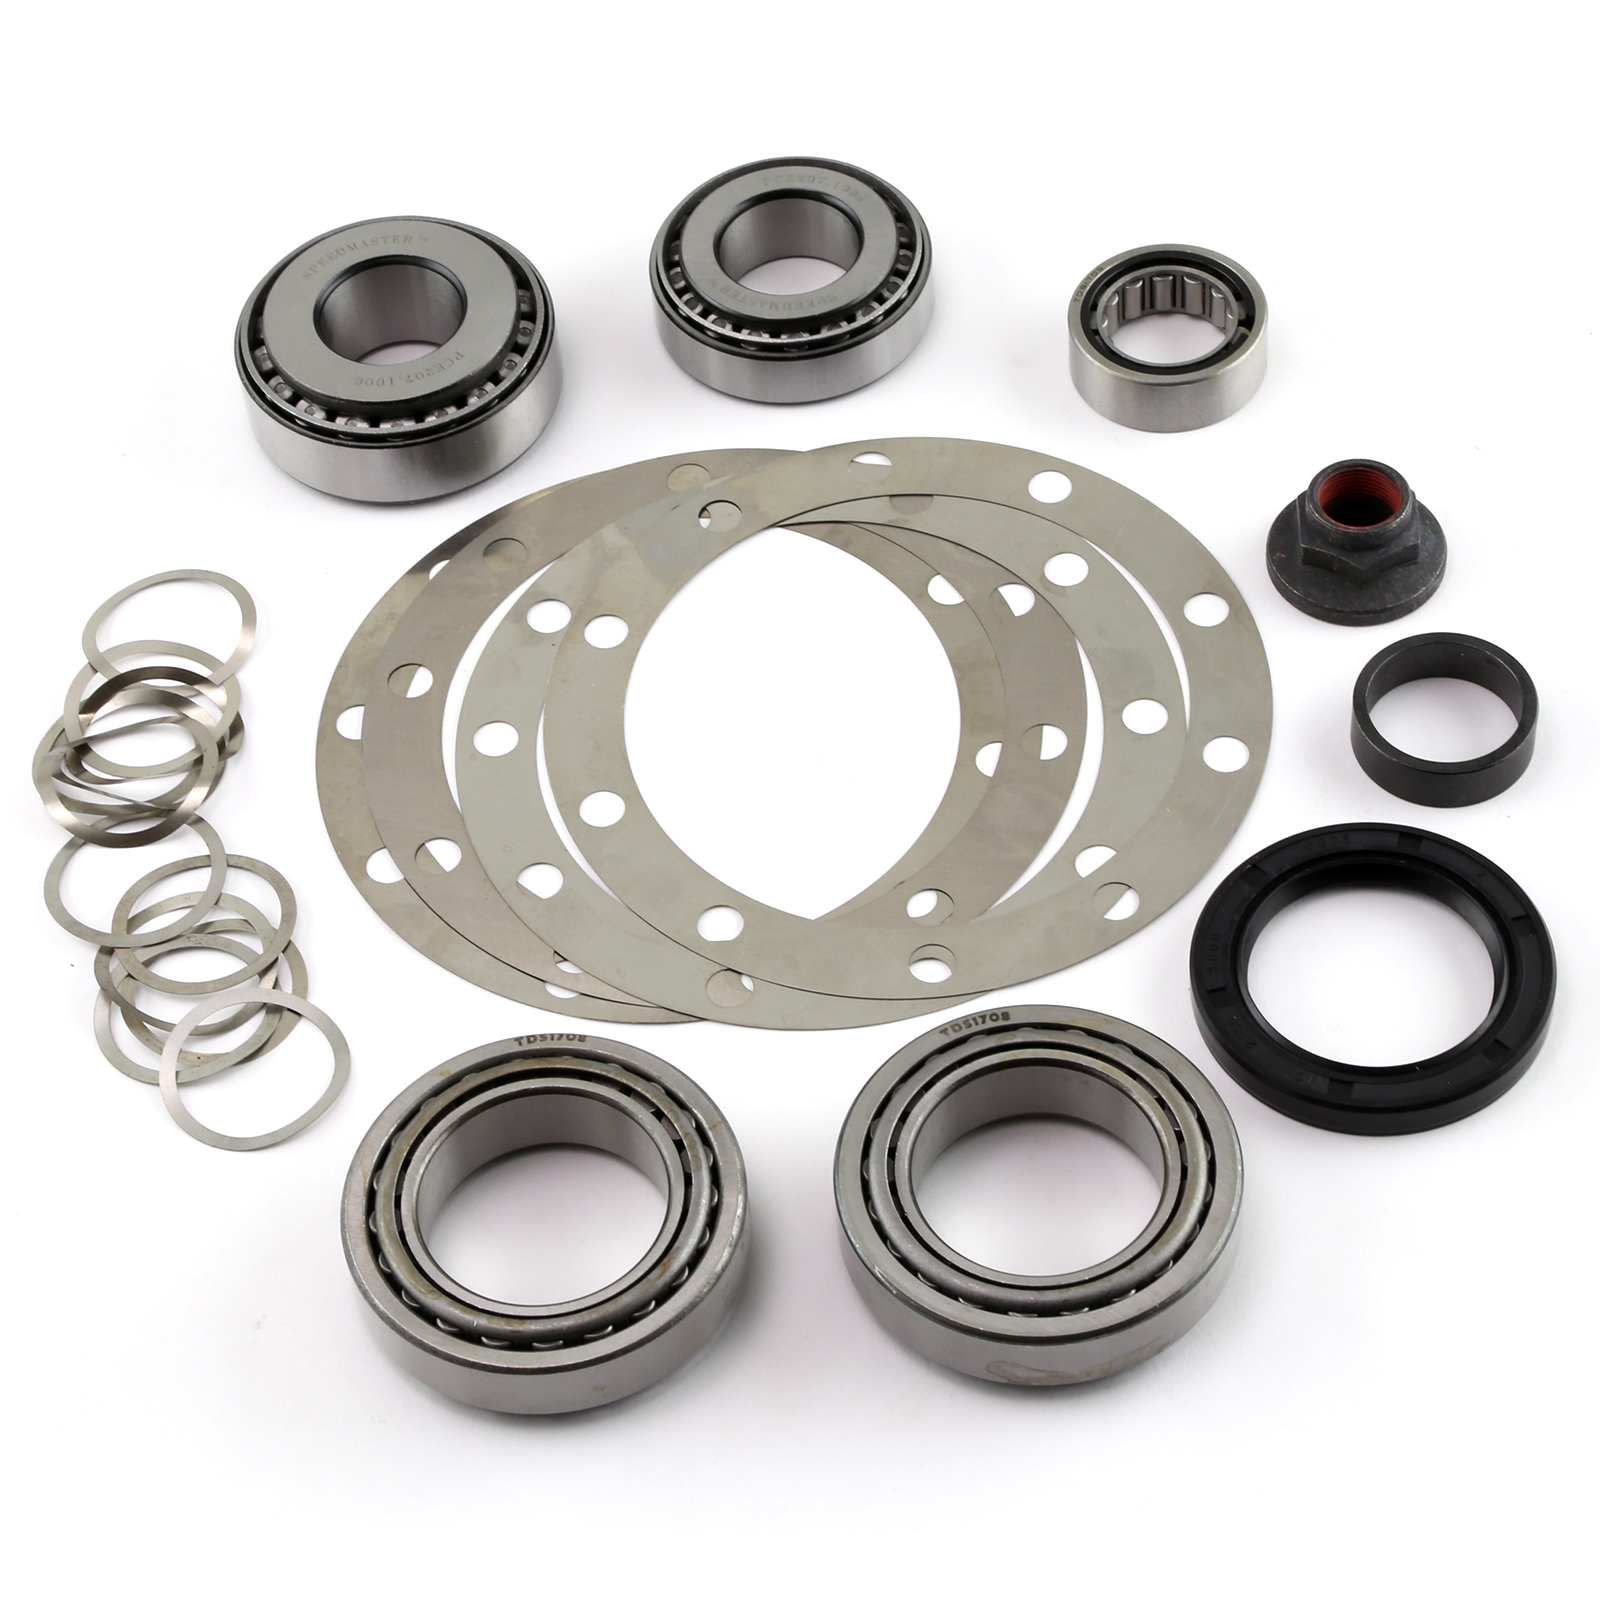 """Speedmaster® PCE593.1002 9"""" Ford Rear End Ring and Pinion Bearing Installation Rebuild Kit 3.25"""" Carrier"""